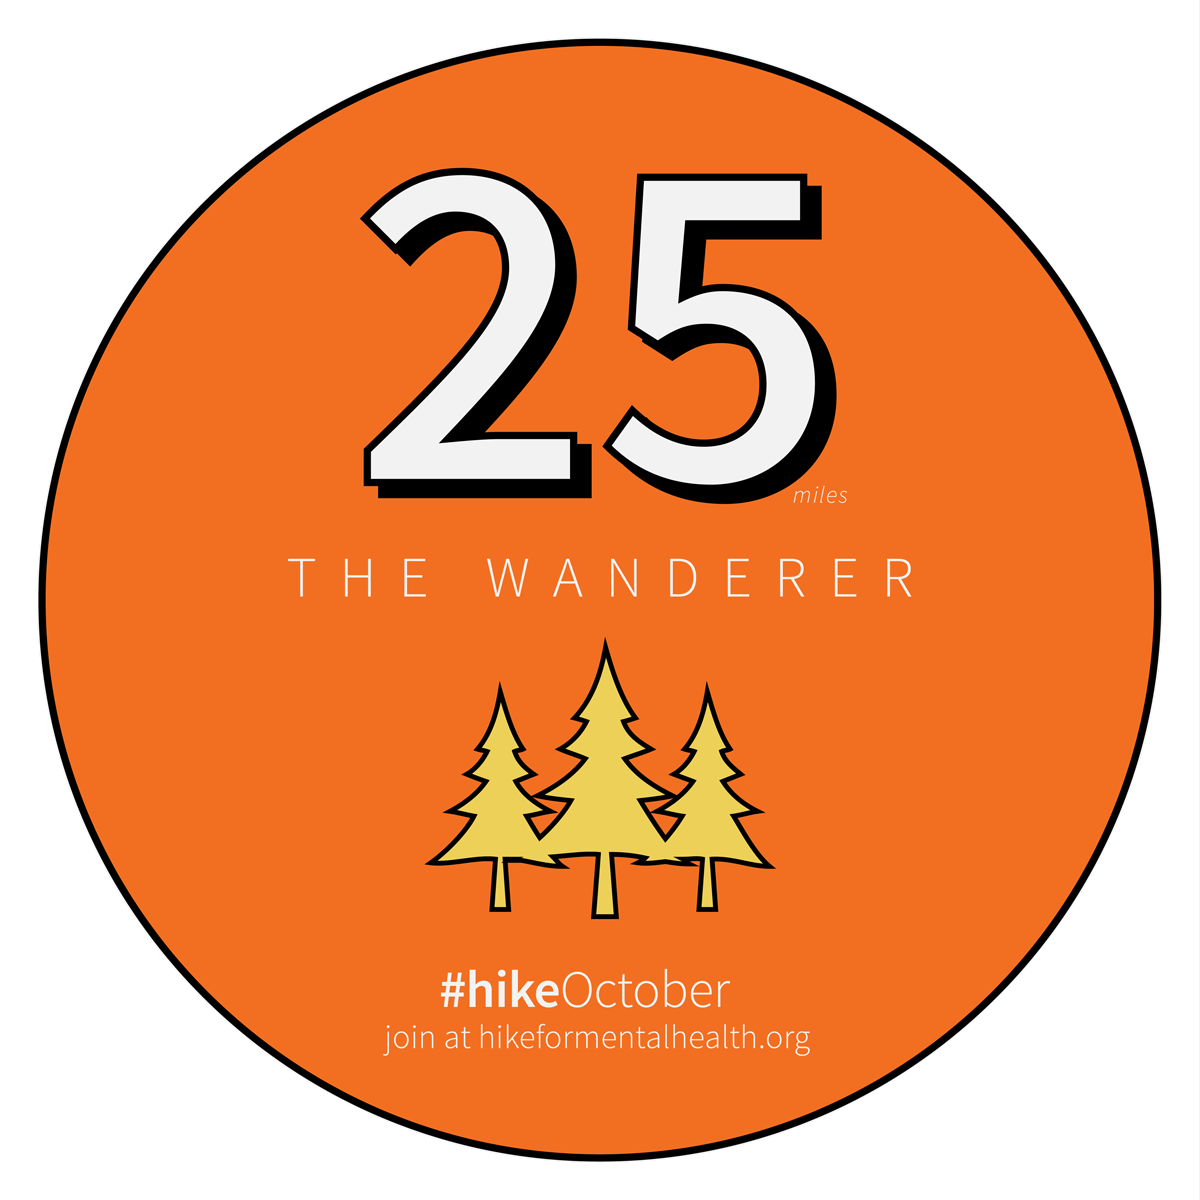 hikeoctober badge